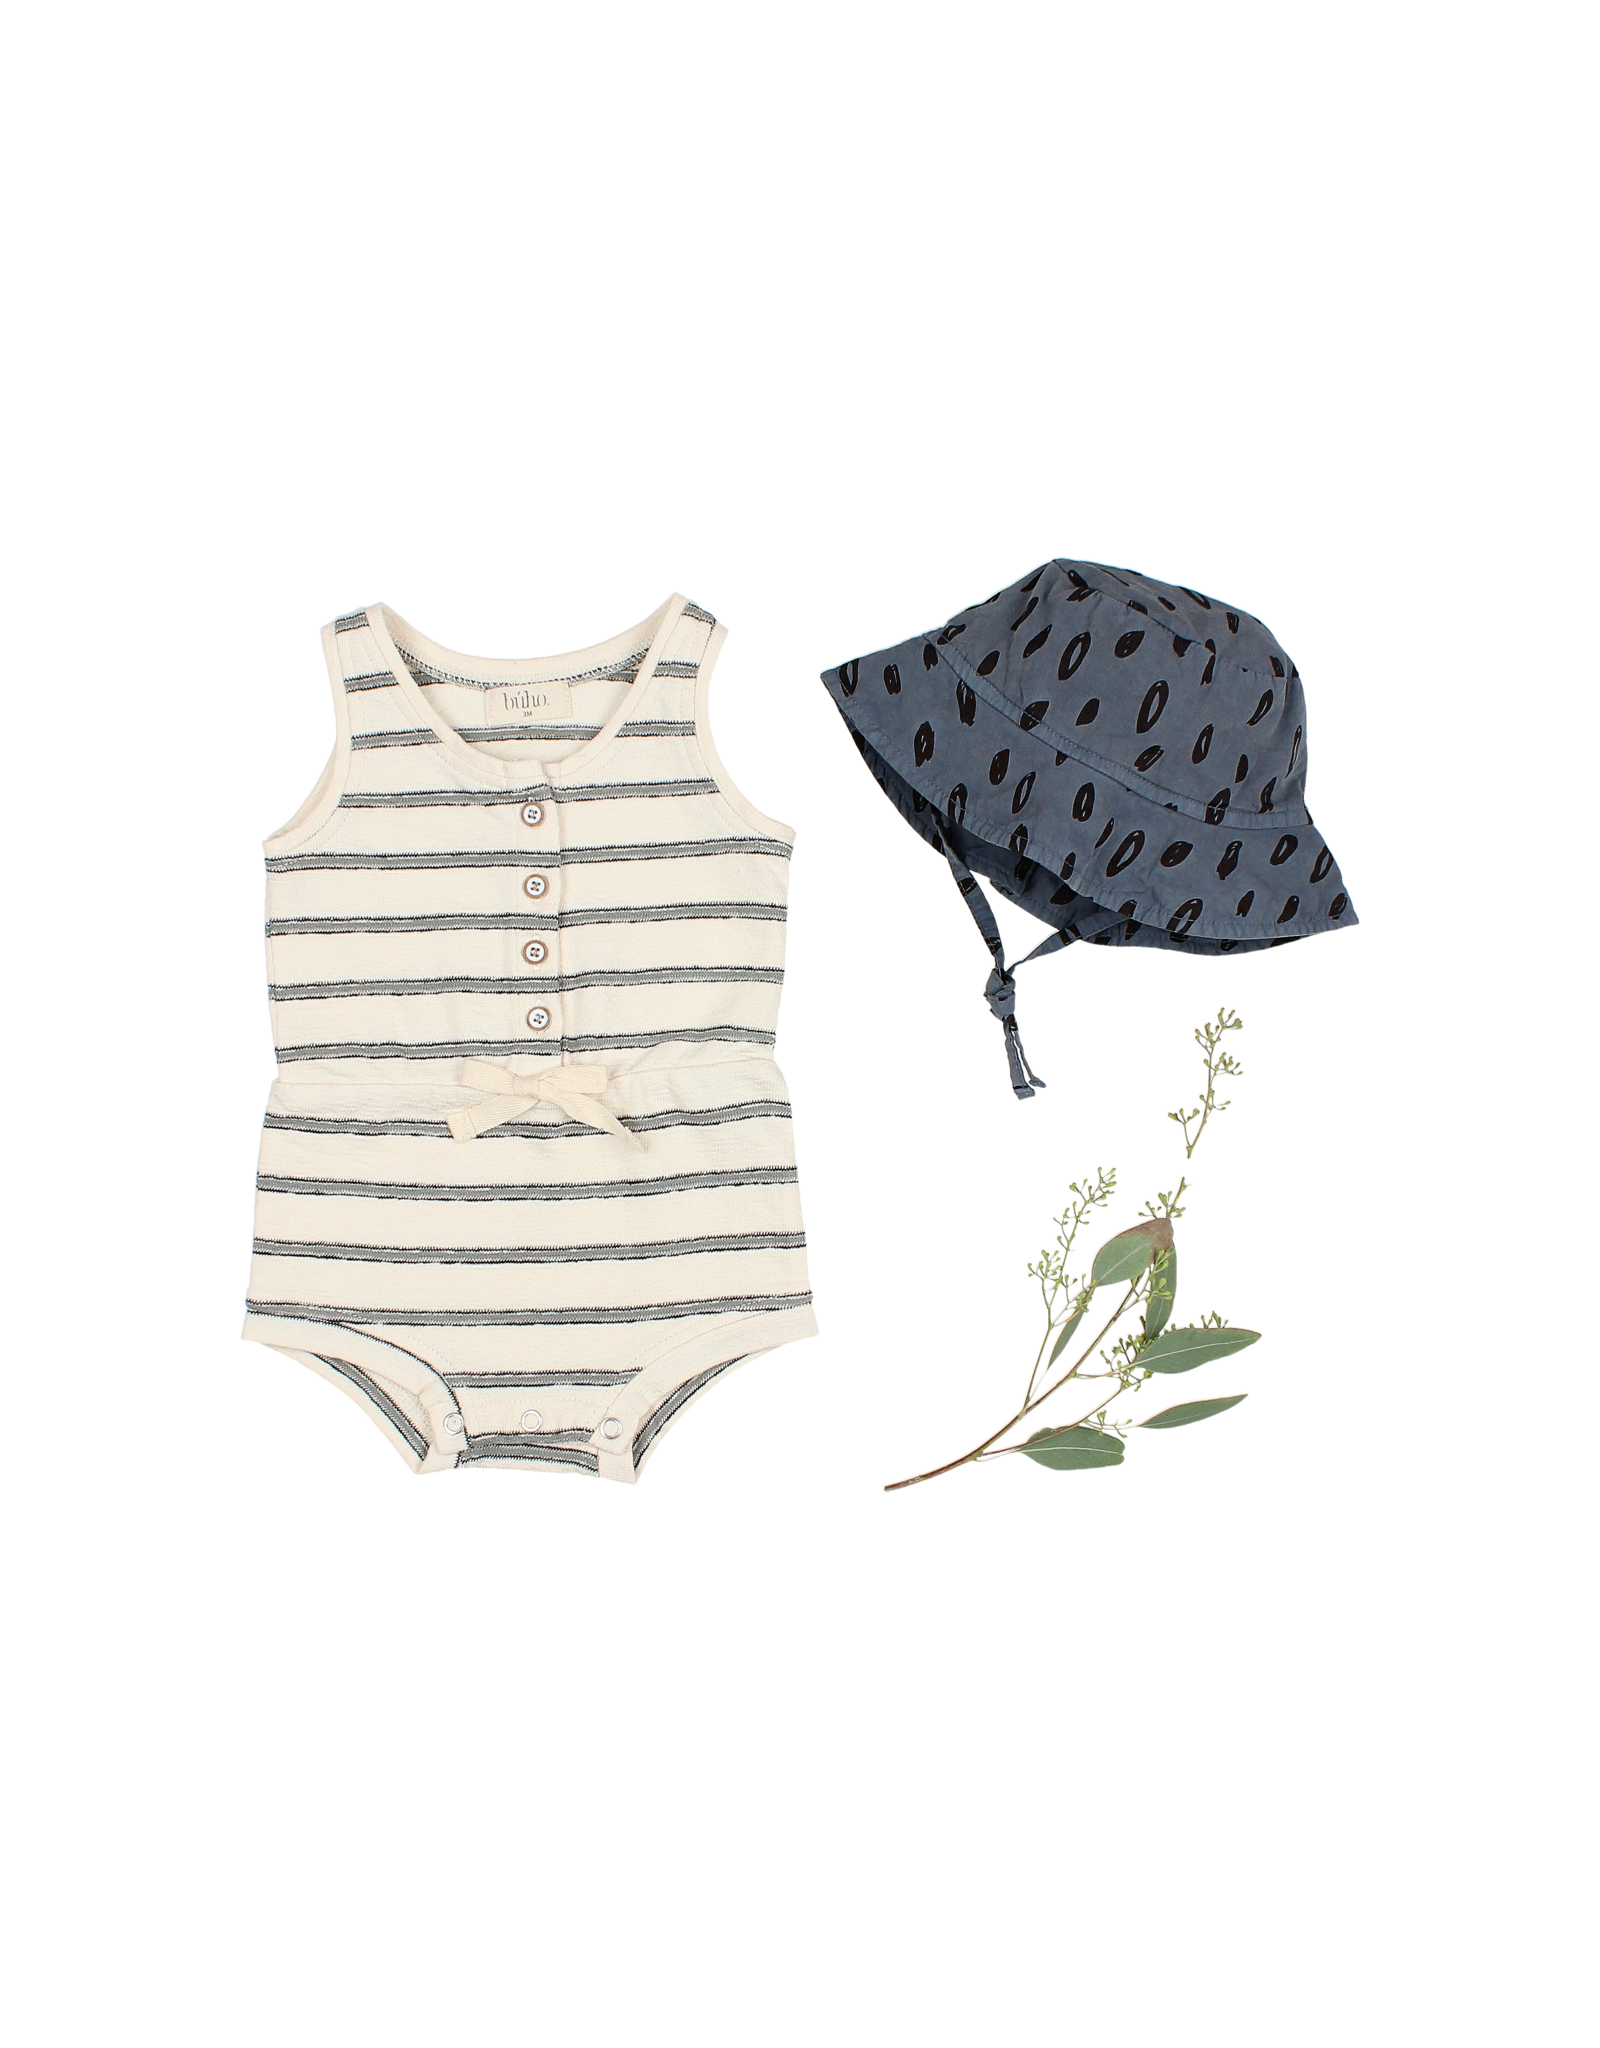 Buho Barboteuse navy stripes - Cloud